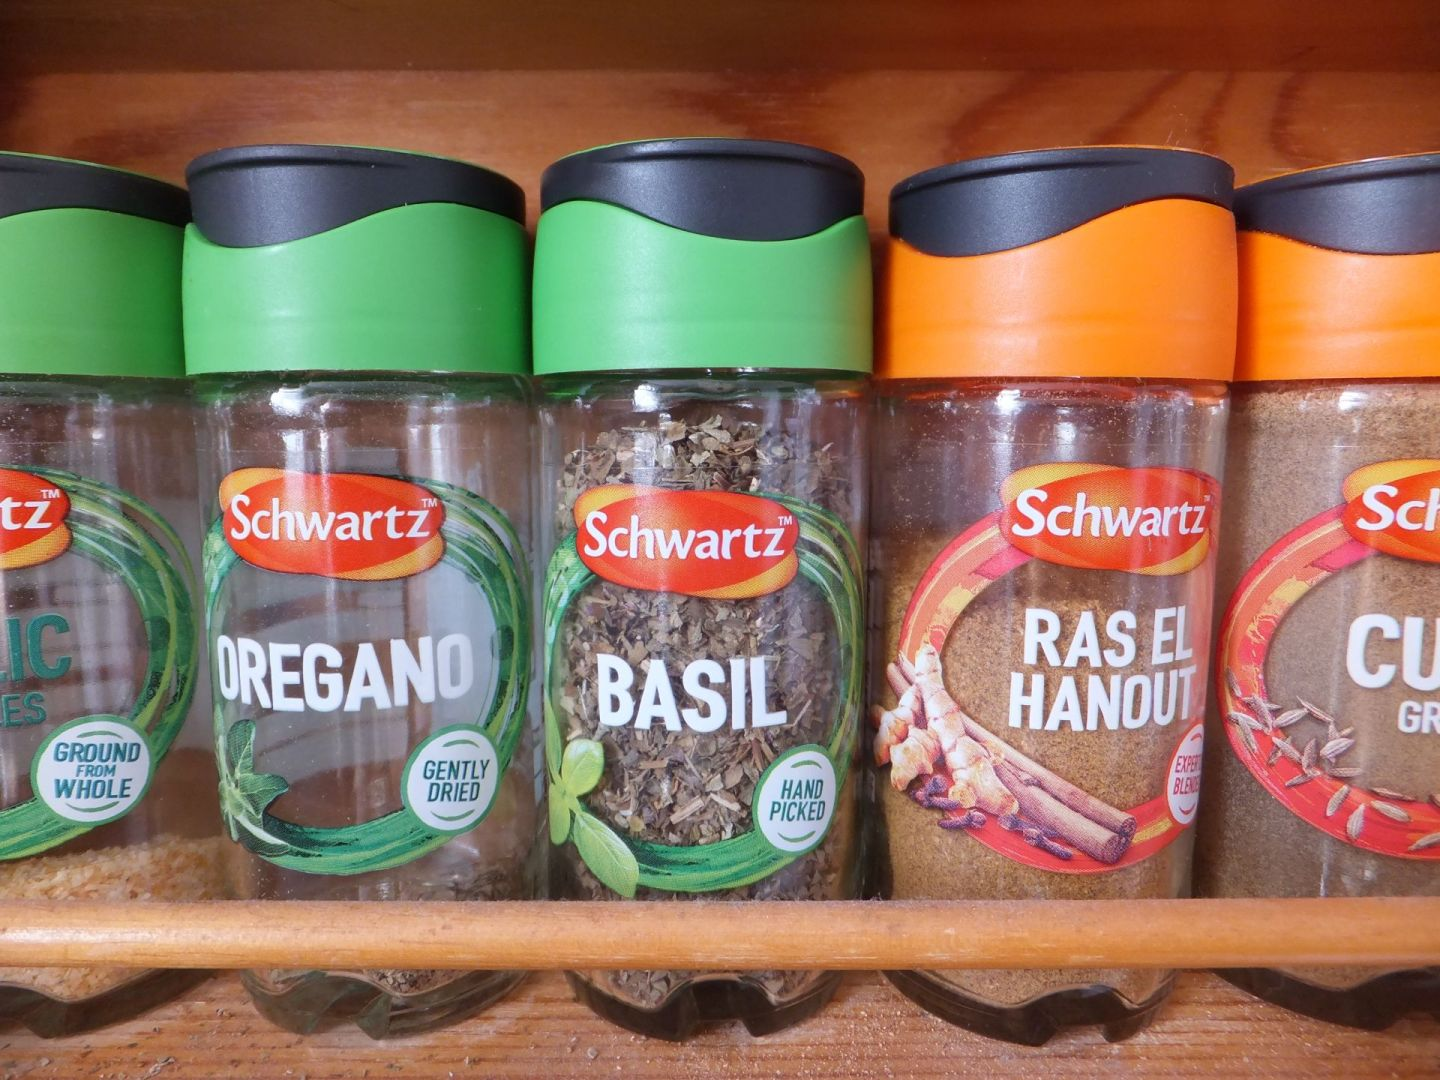 Cooking fresh meals with Schwartz dried herbs